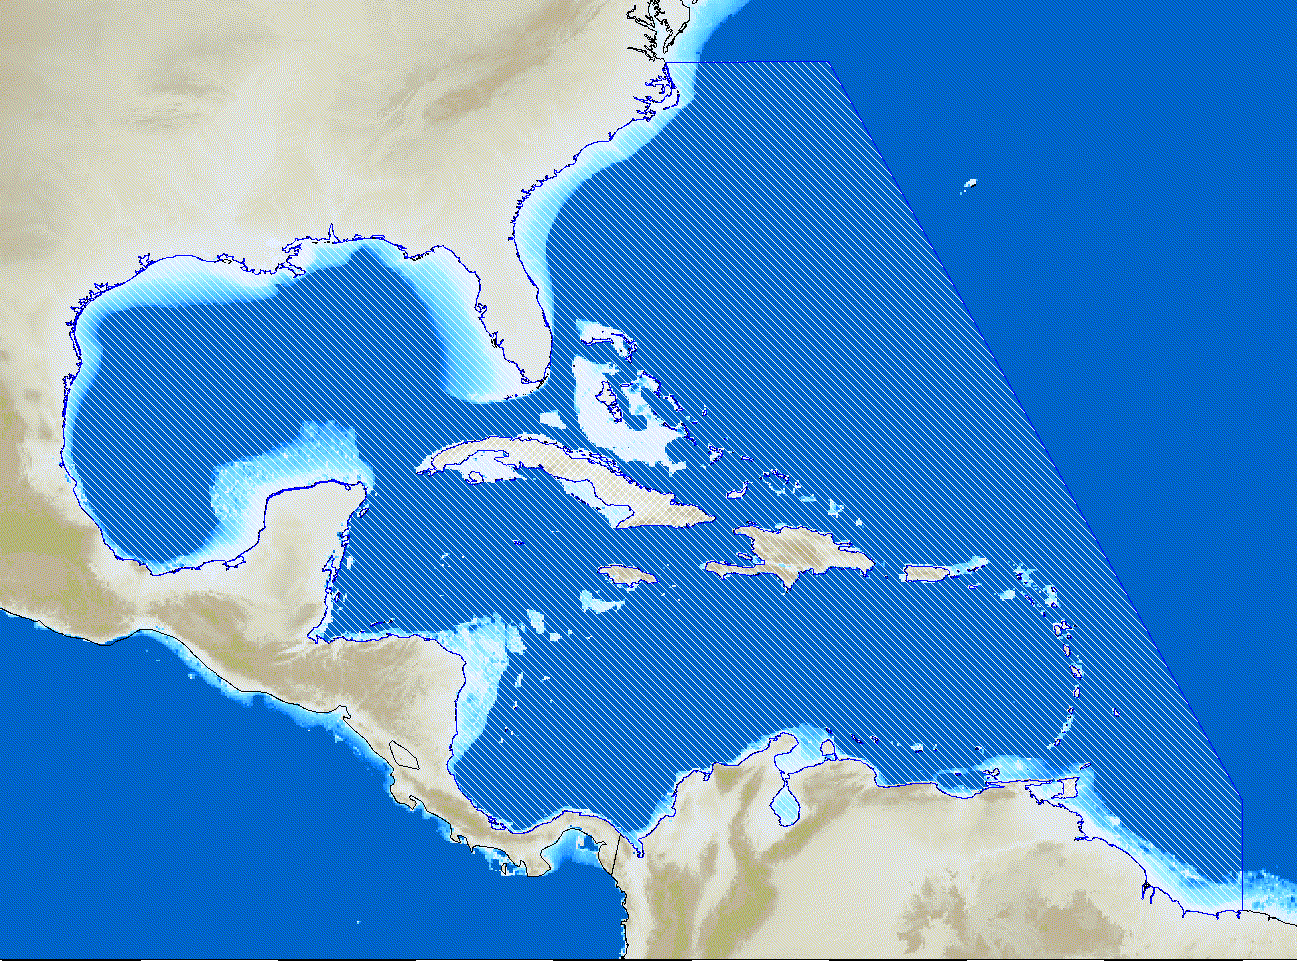 Caribbean (Days After Chaos)